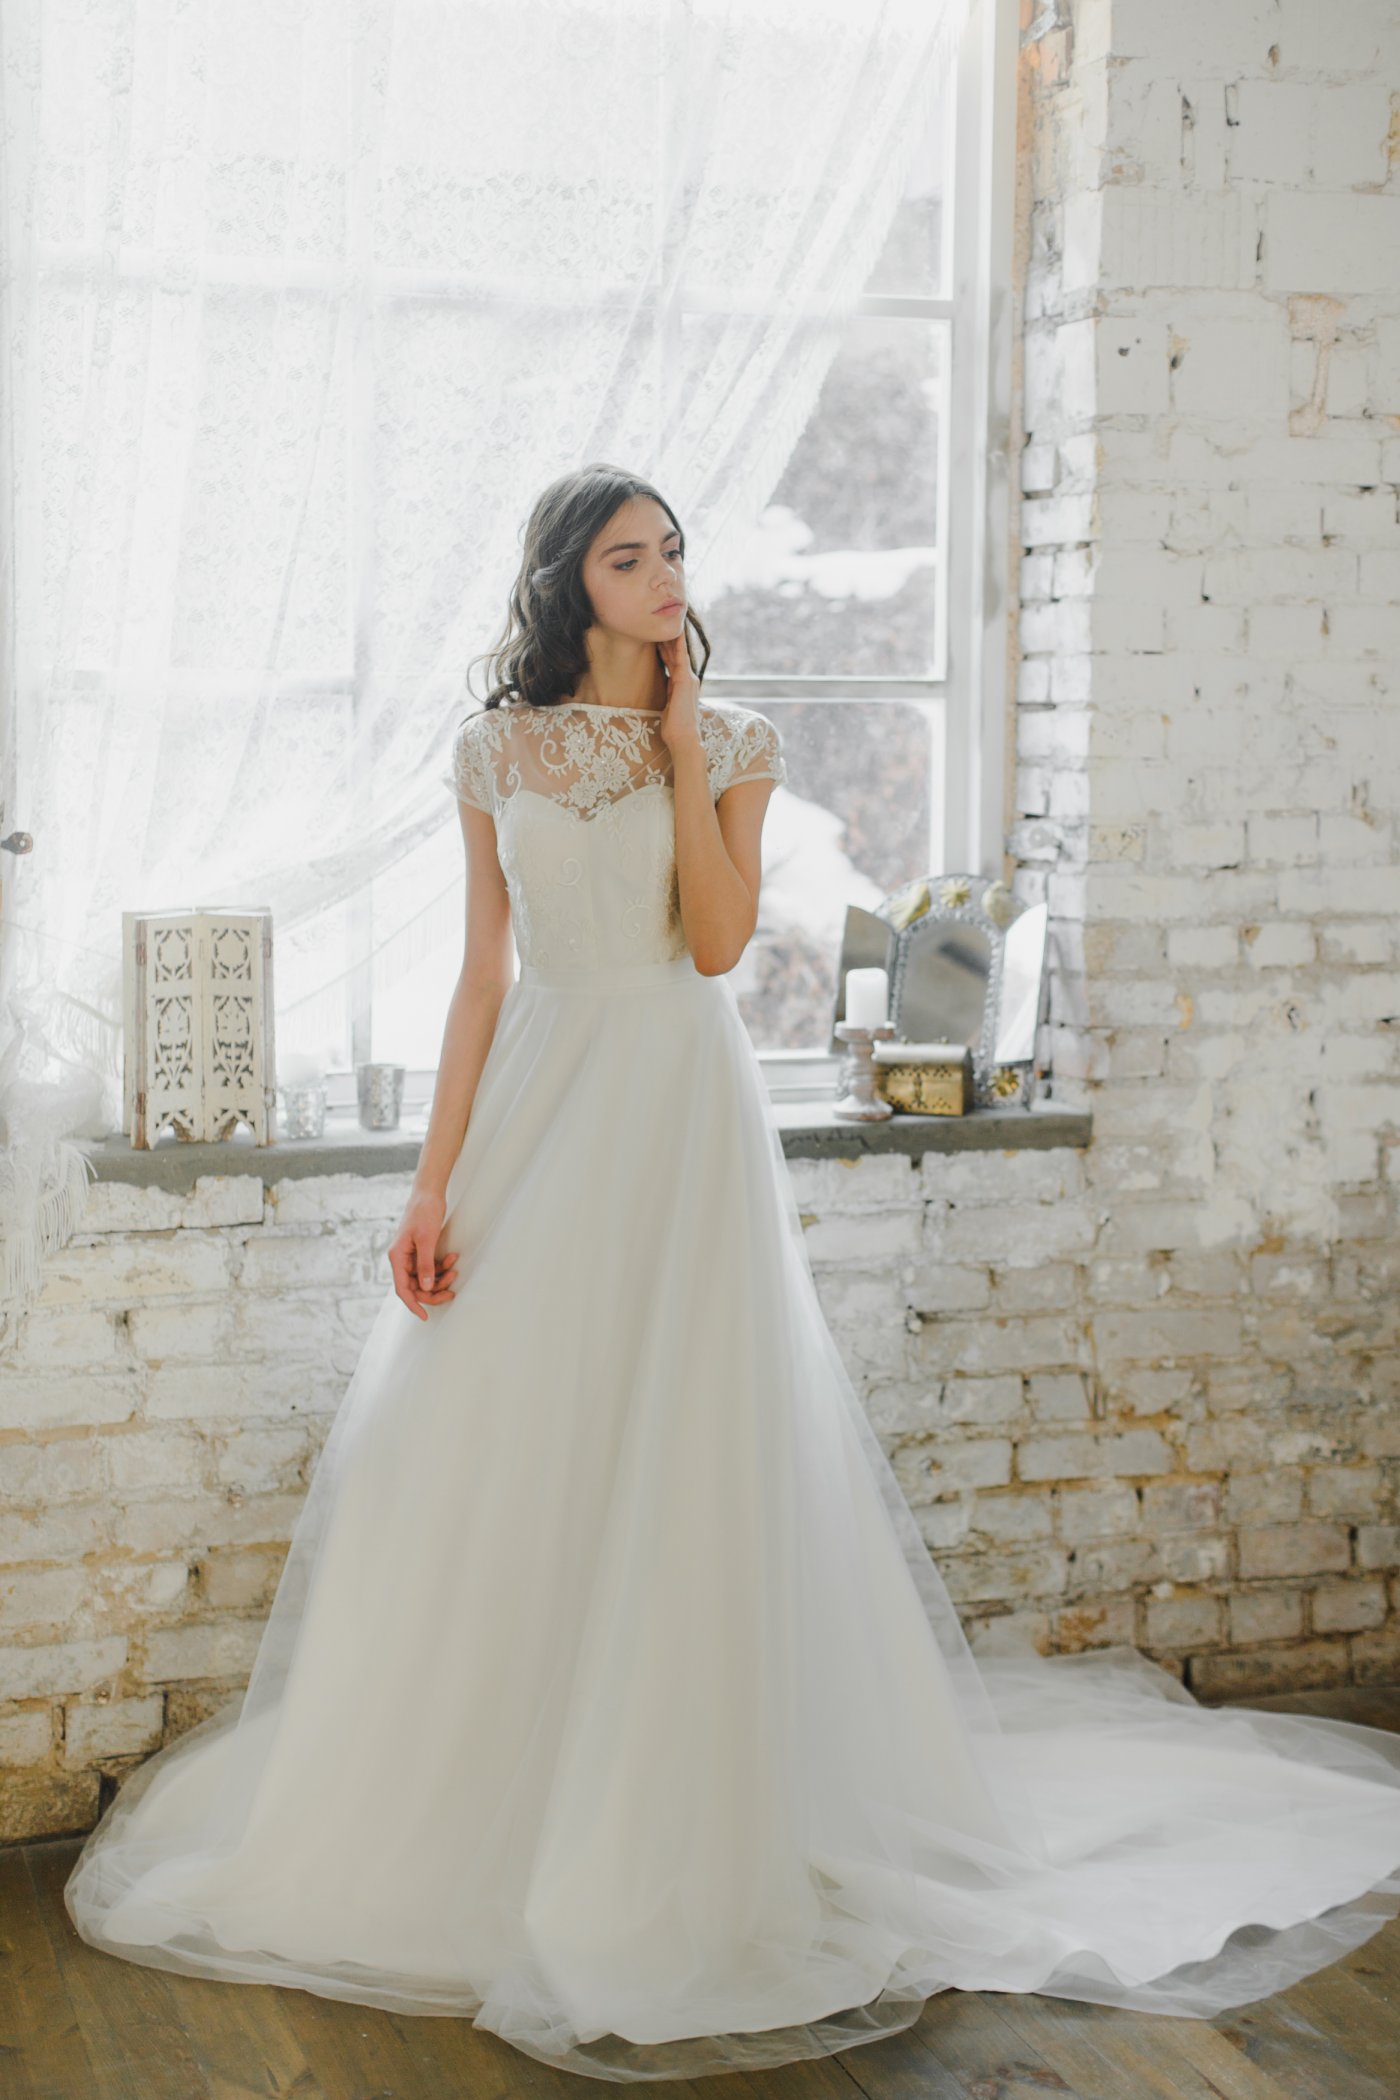 Cap Sleeve Illusion Neckline Wedding Dress With Layered Skirt